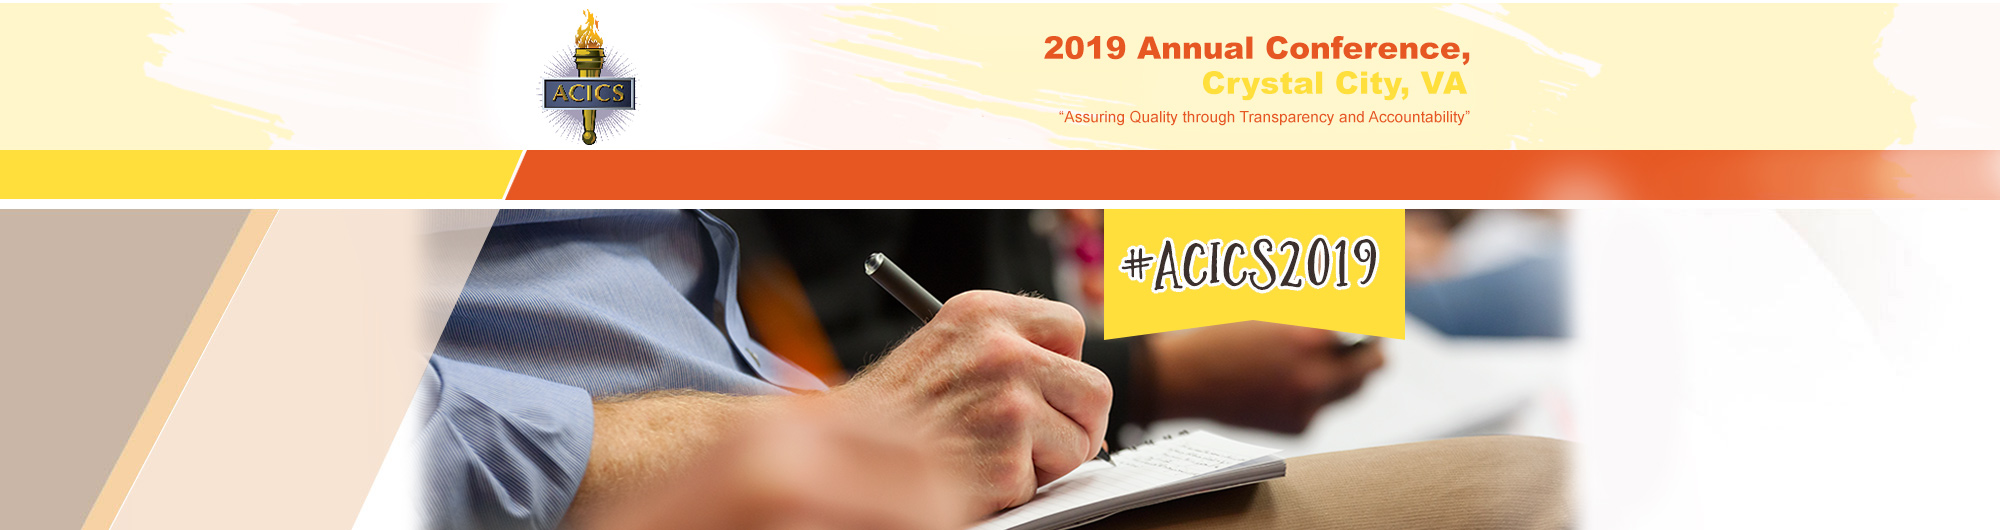 2019 ACICS Professional Development Conference and Annual Meeting